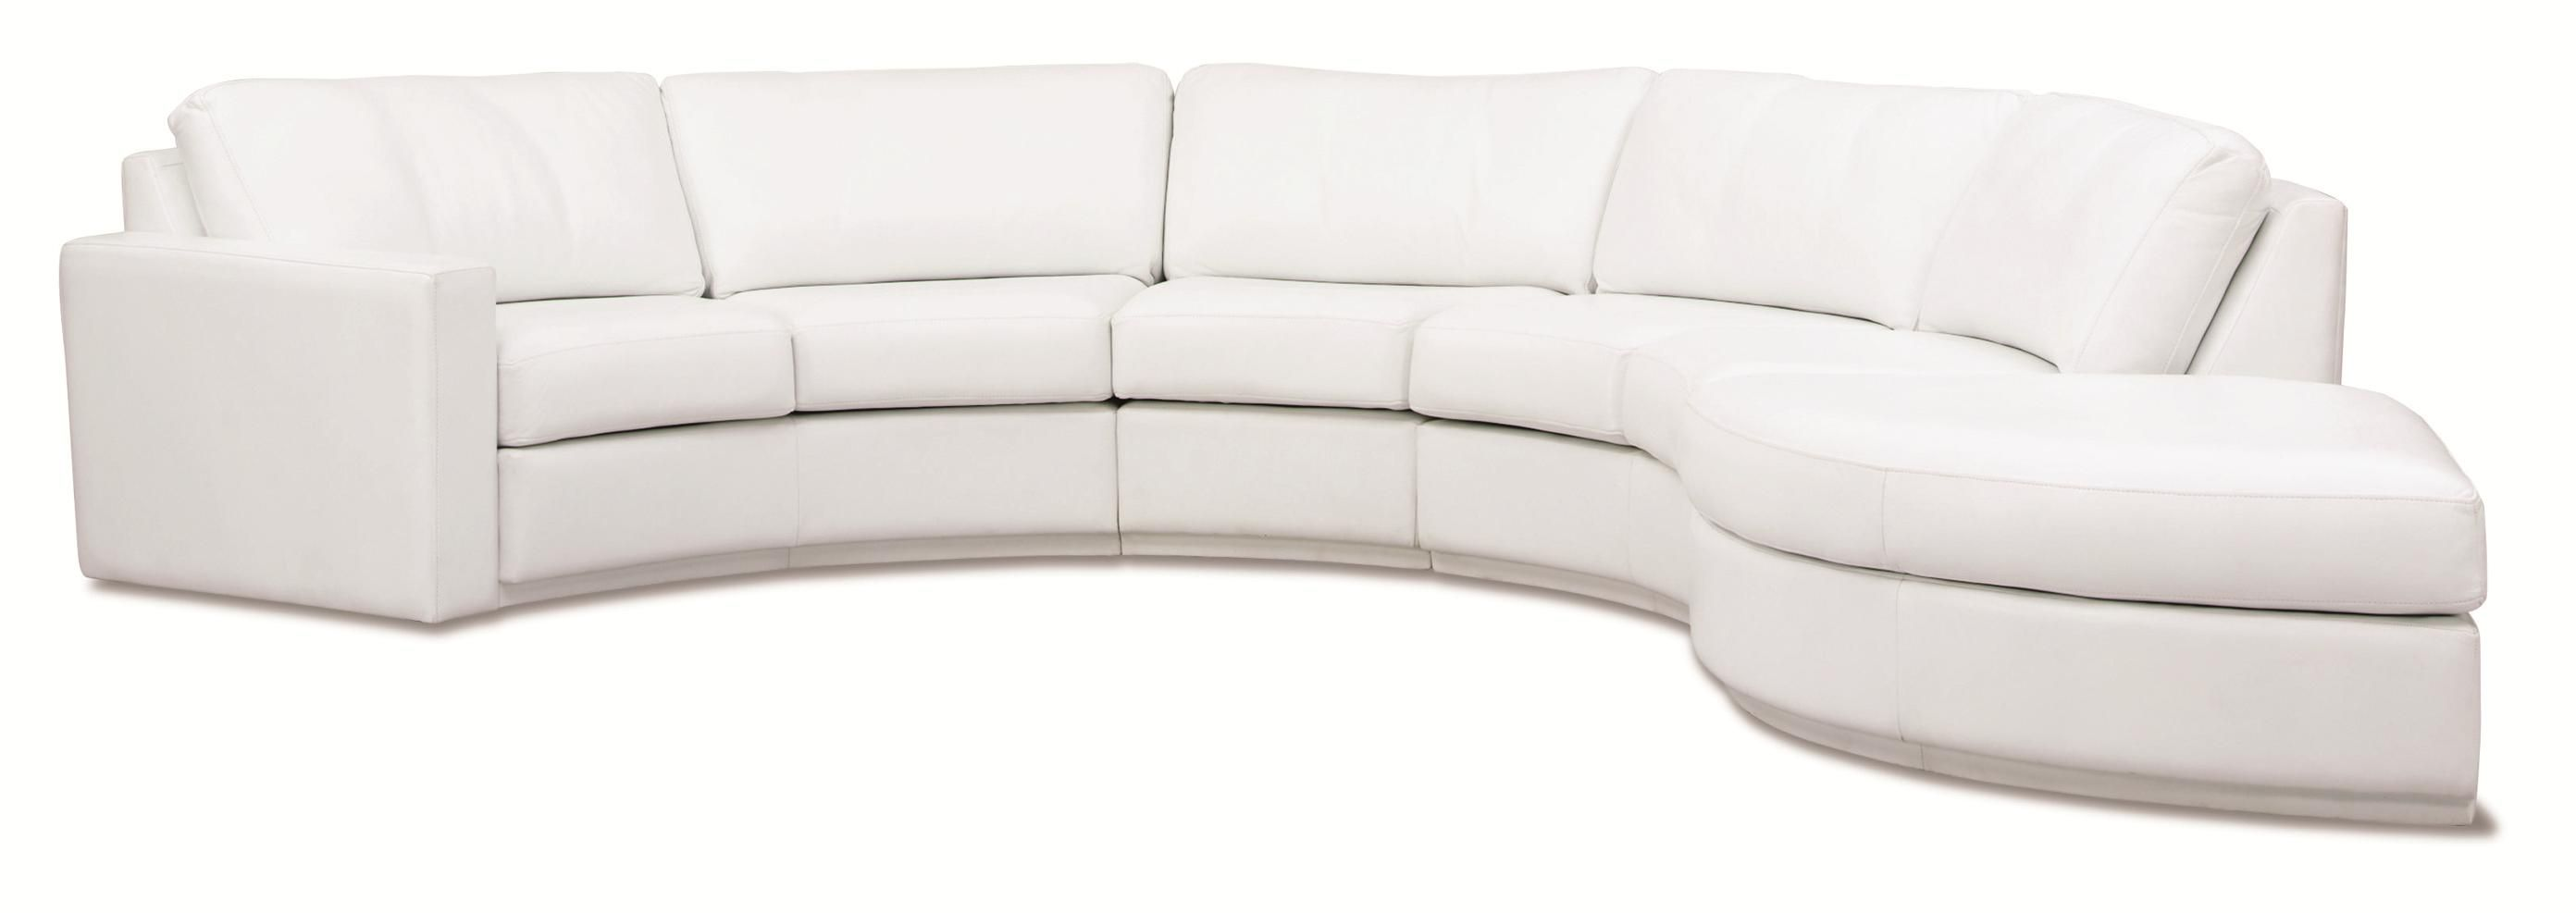 Cosmopolitan Sectional Sofa by Elite Leather is is the one